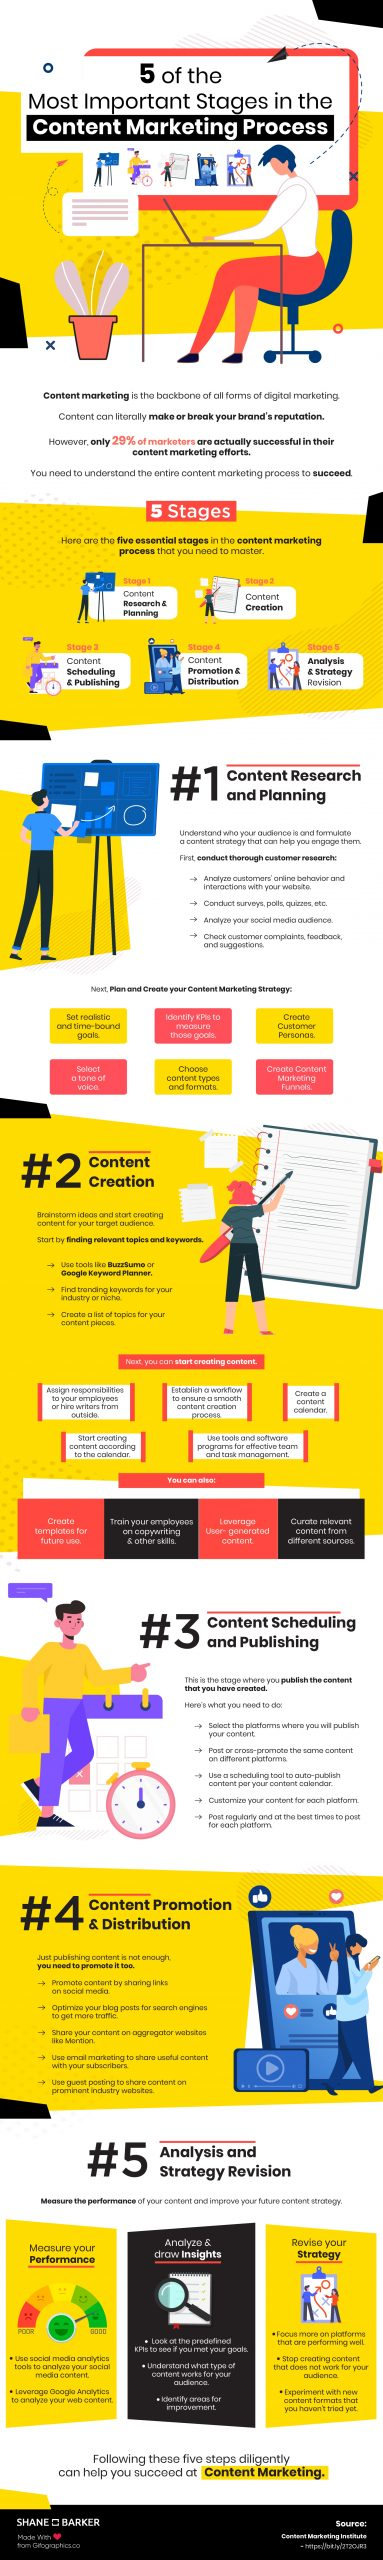 How to Do Content Marketing like a Pro